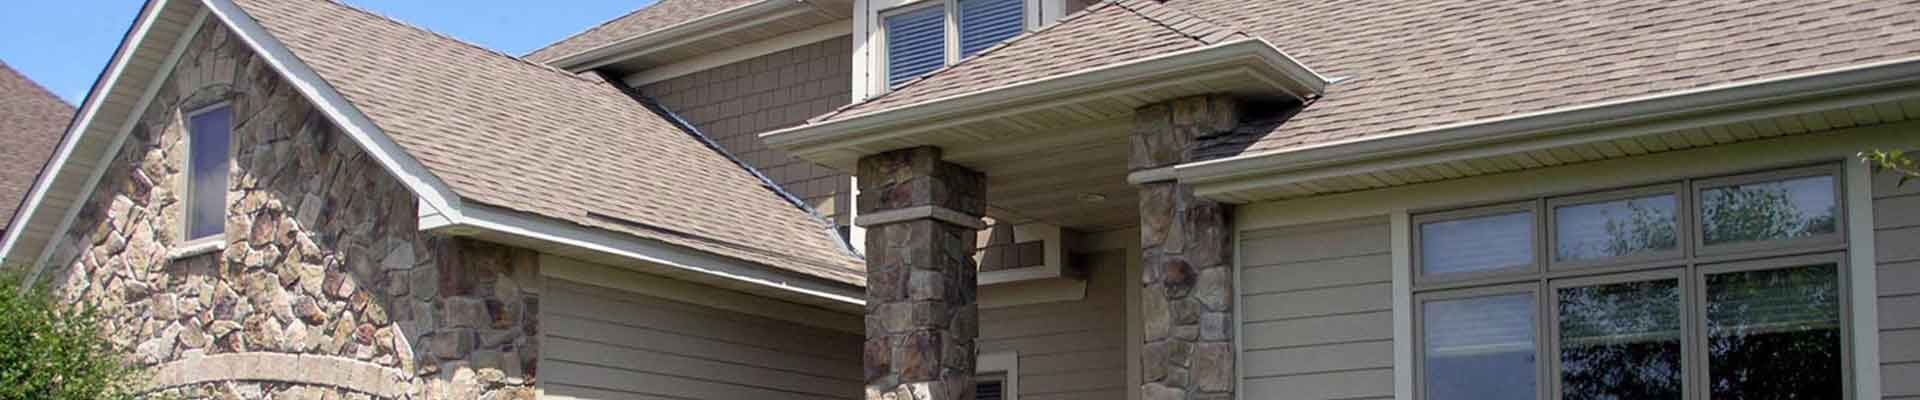 roof contractor minneapolis